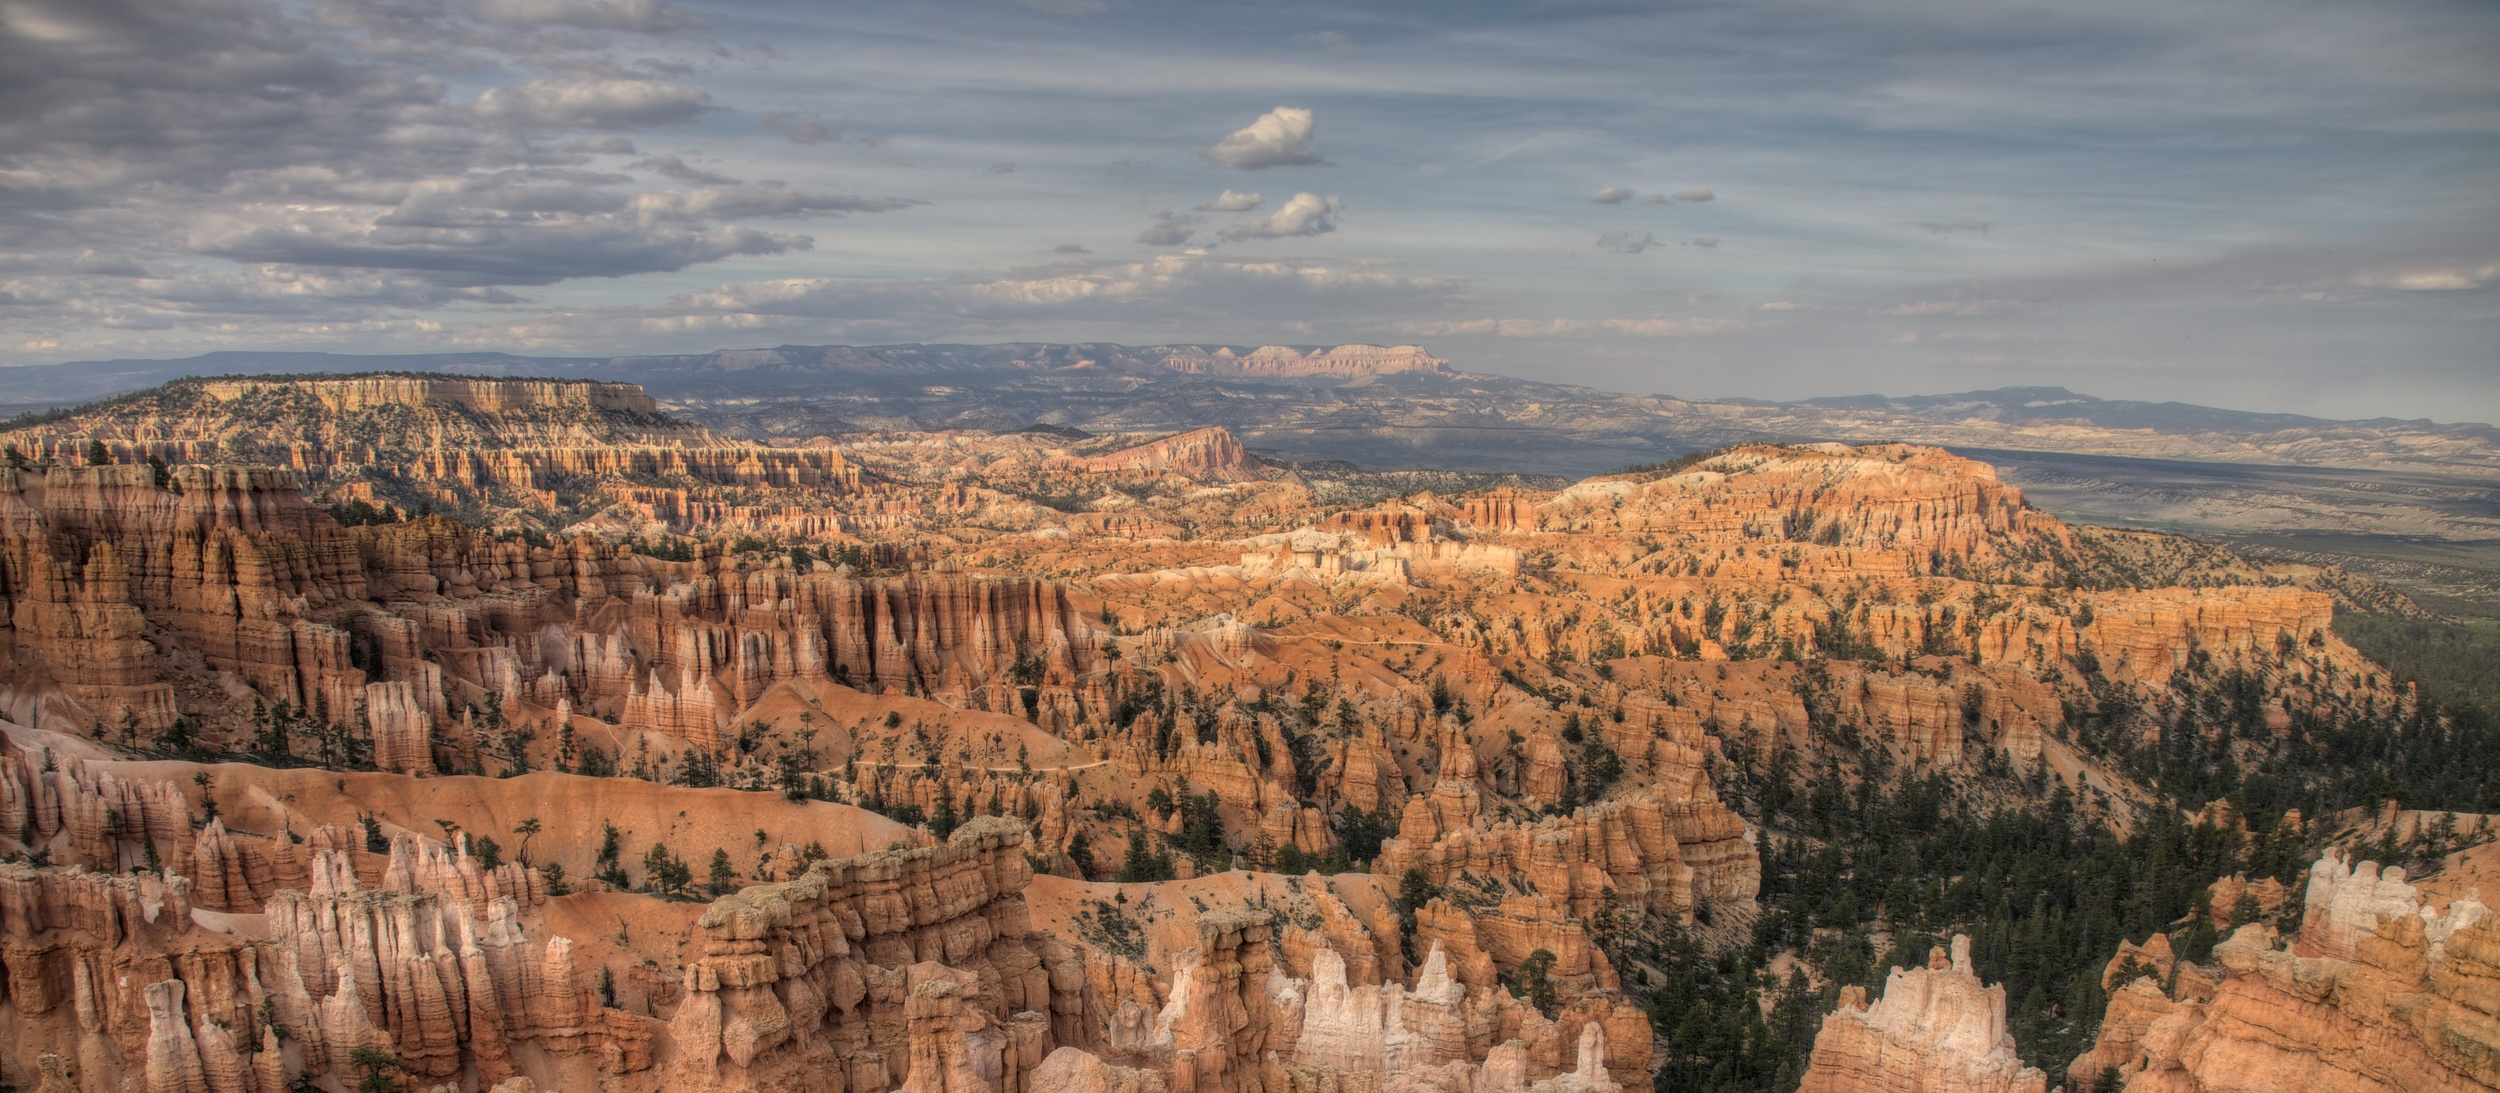 Bryce++12106+-+Version+2-943220940-O.jpg